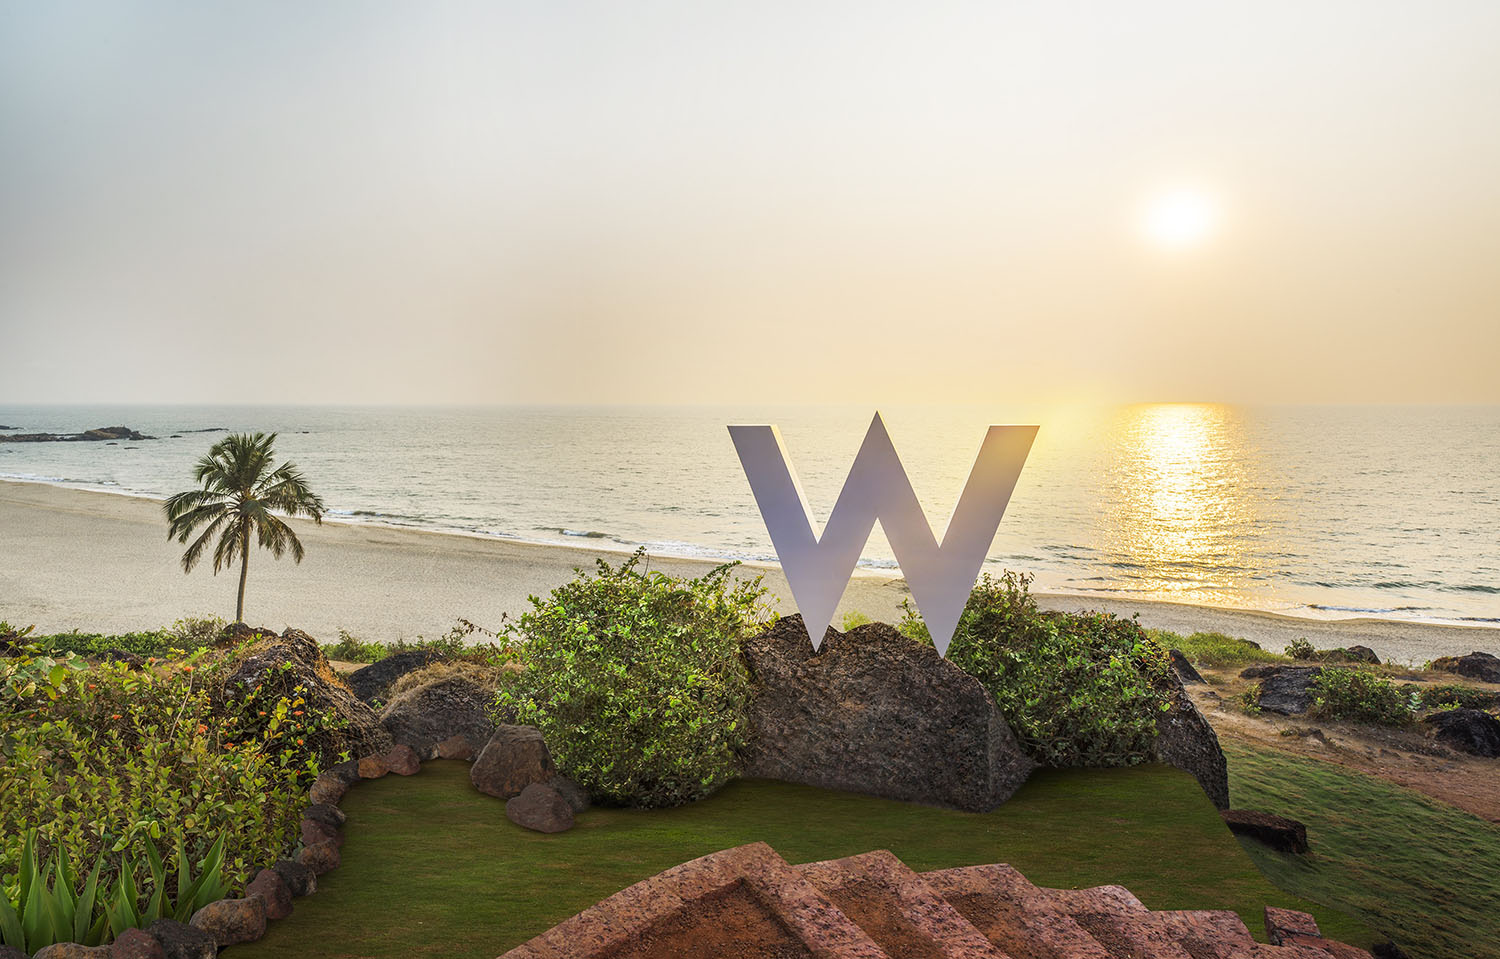 hotel industry in goa Business details the hotel is located in close proximity to the calangute candolim main road at calangute, north goa the property is one year old and located in the high density tourist belt of calangute village and is surrounded by several boutique resorts, shopping arcades etc.